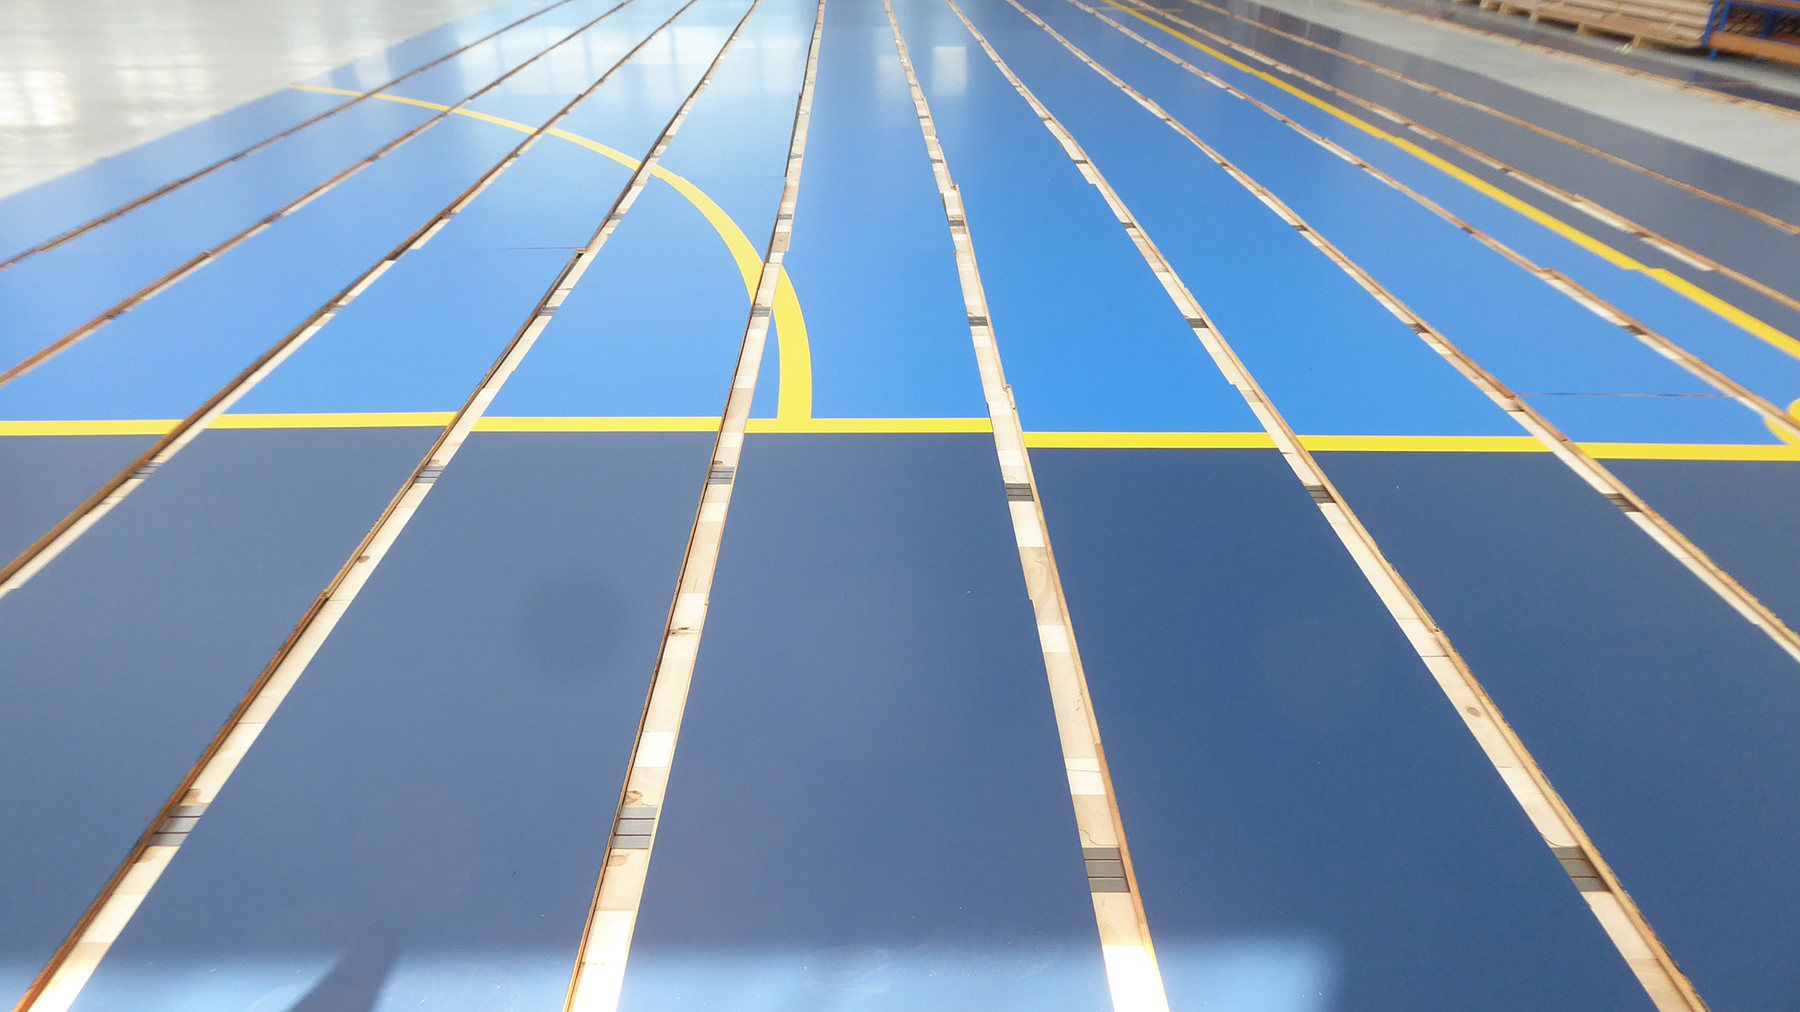 The individual panels of the removable parquet and the colors of the Swedish flag